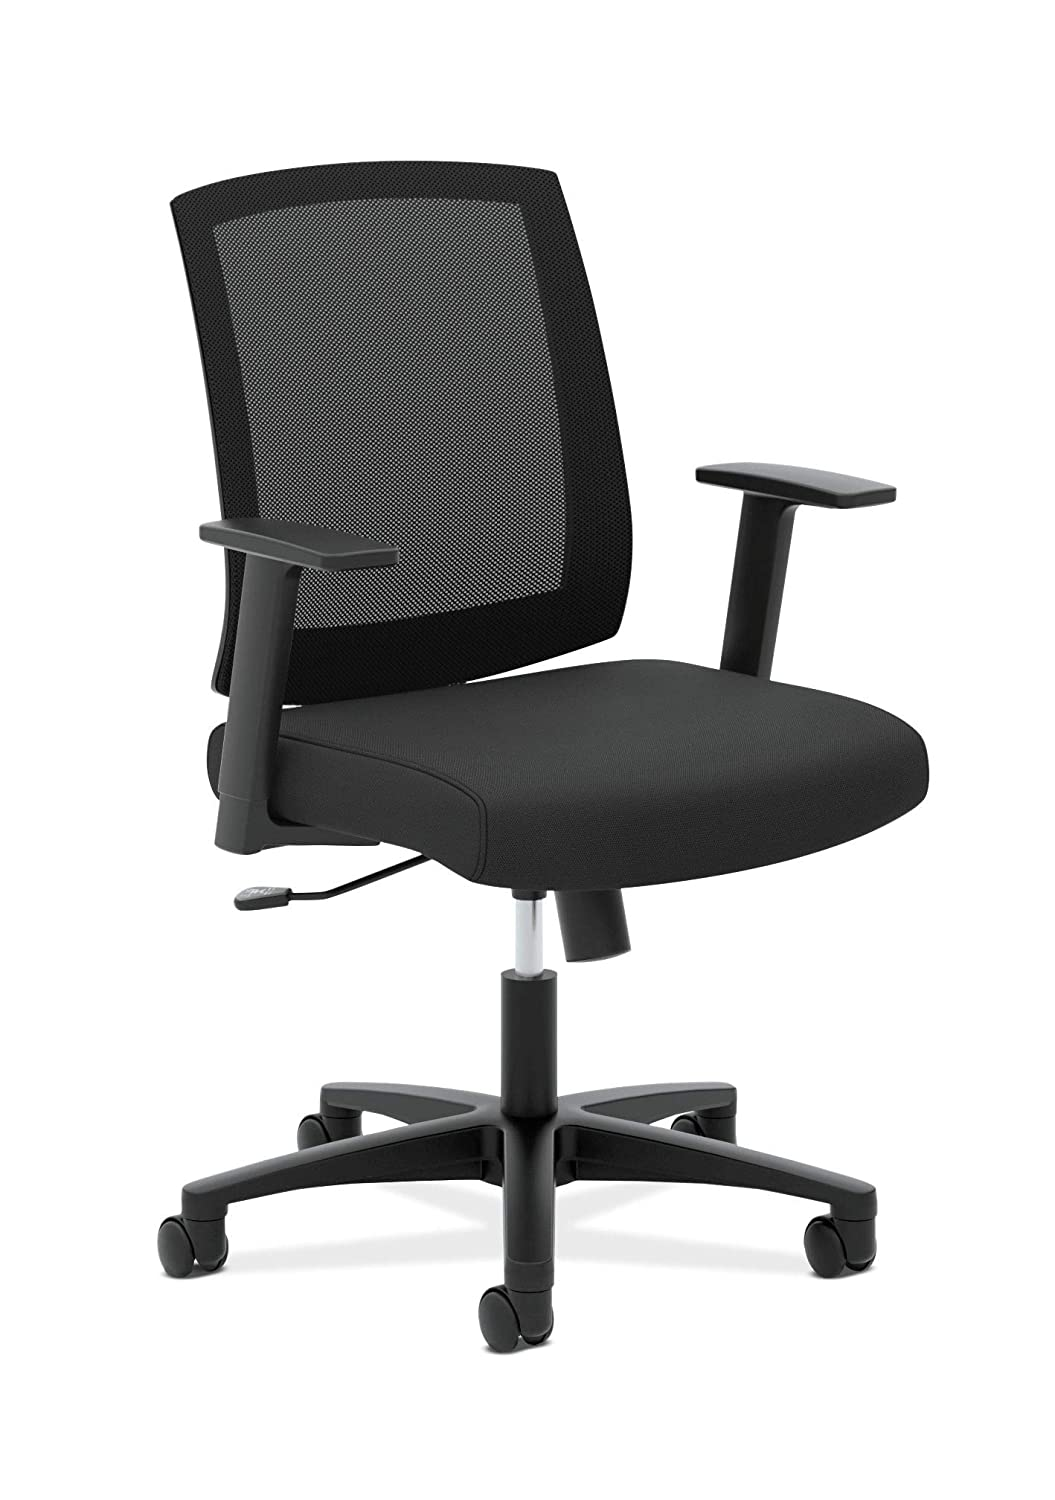 HON Torch Mesh Task Chair - Mid-Back Office Chair,Black(HVL511)